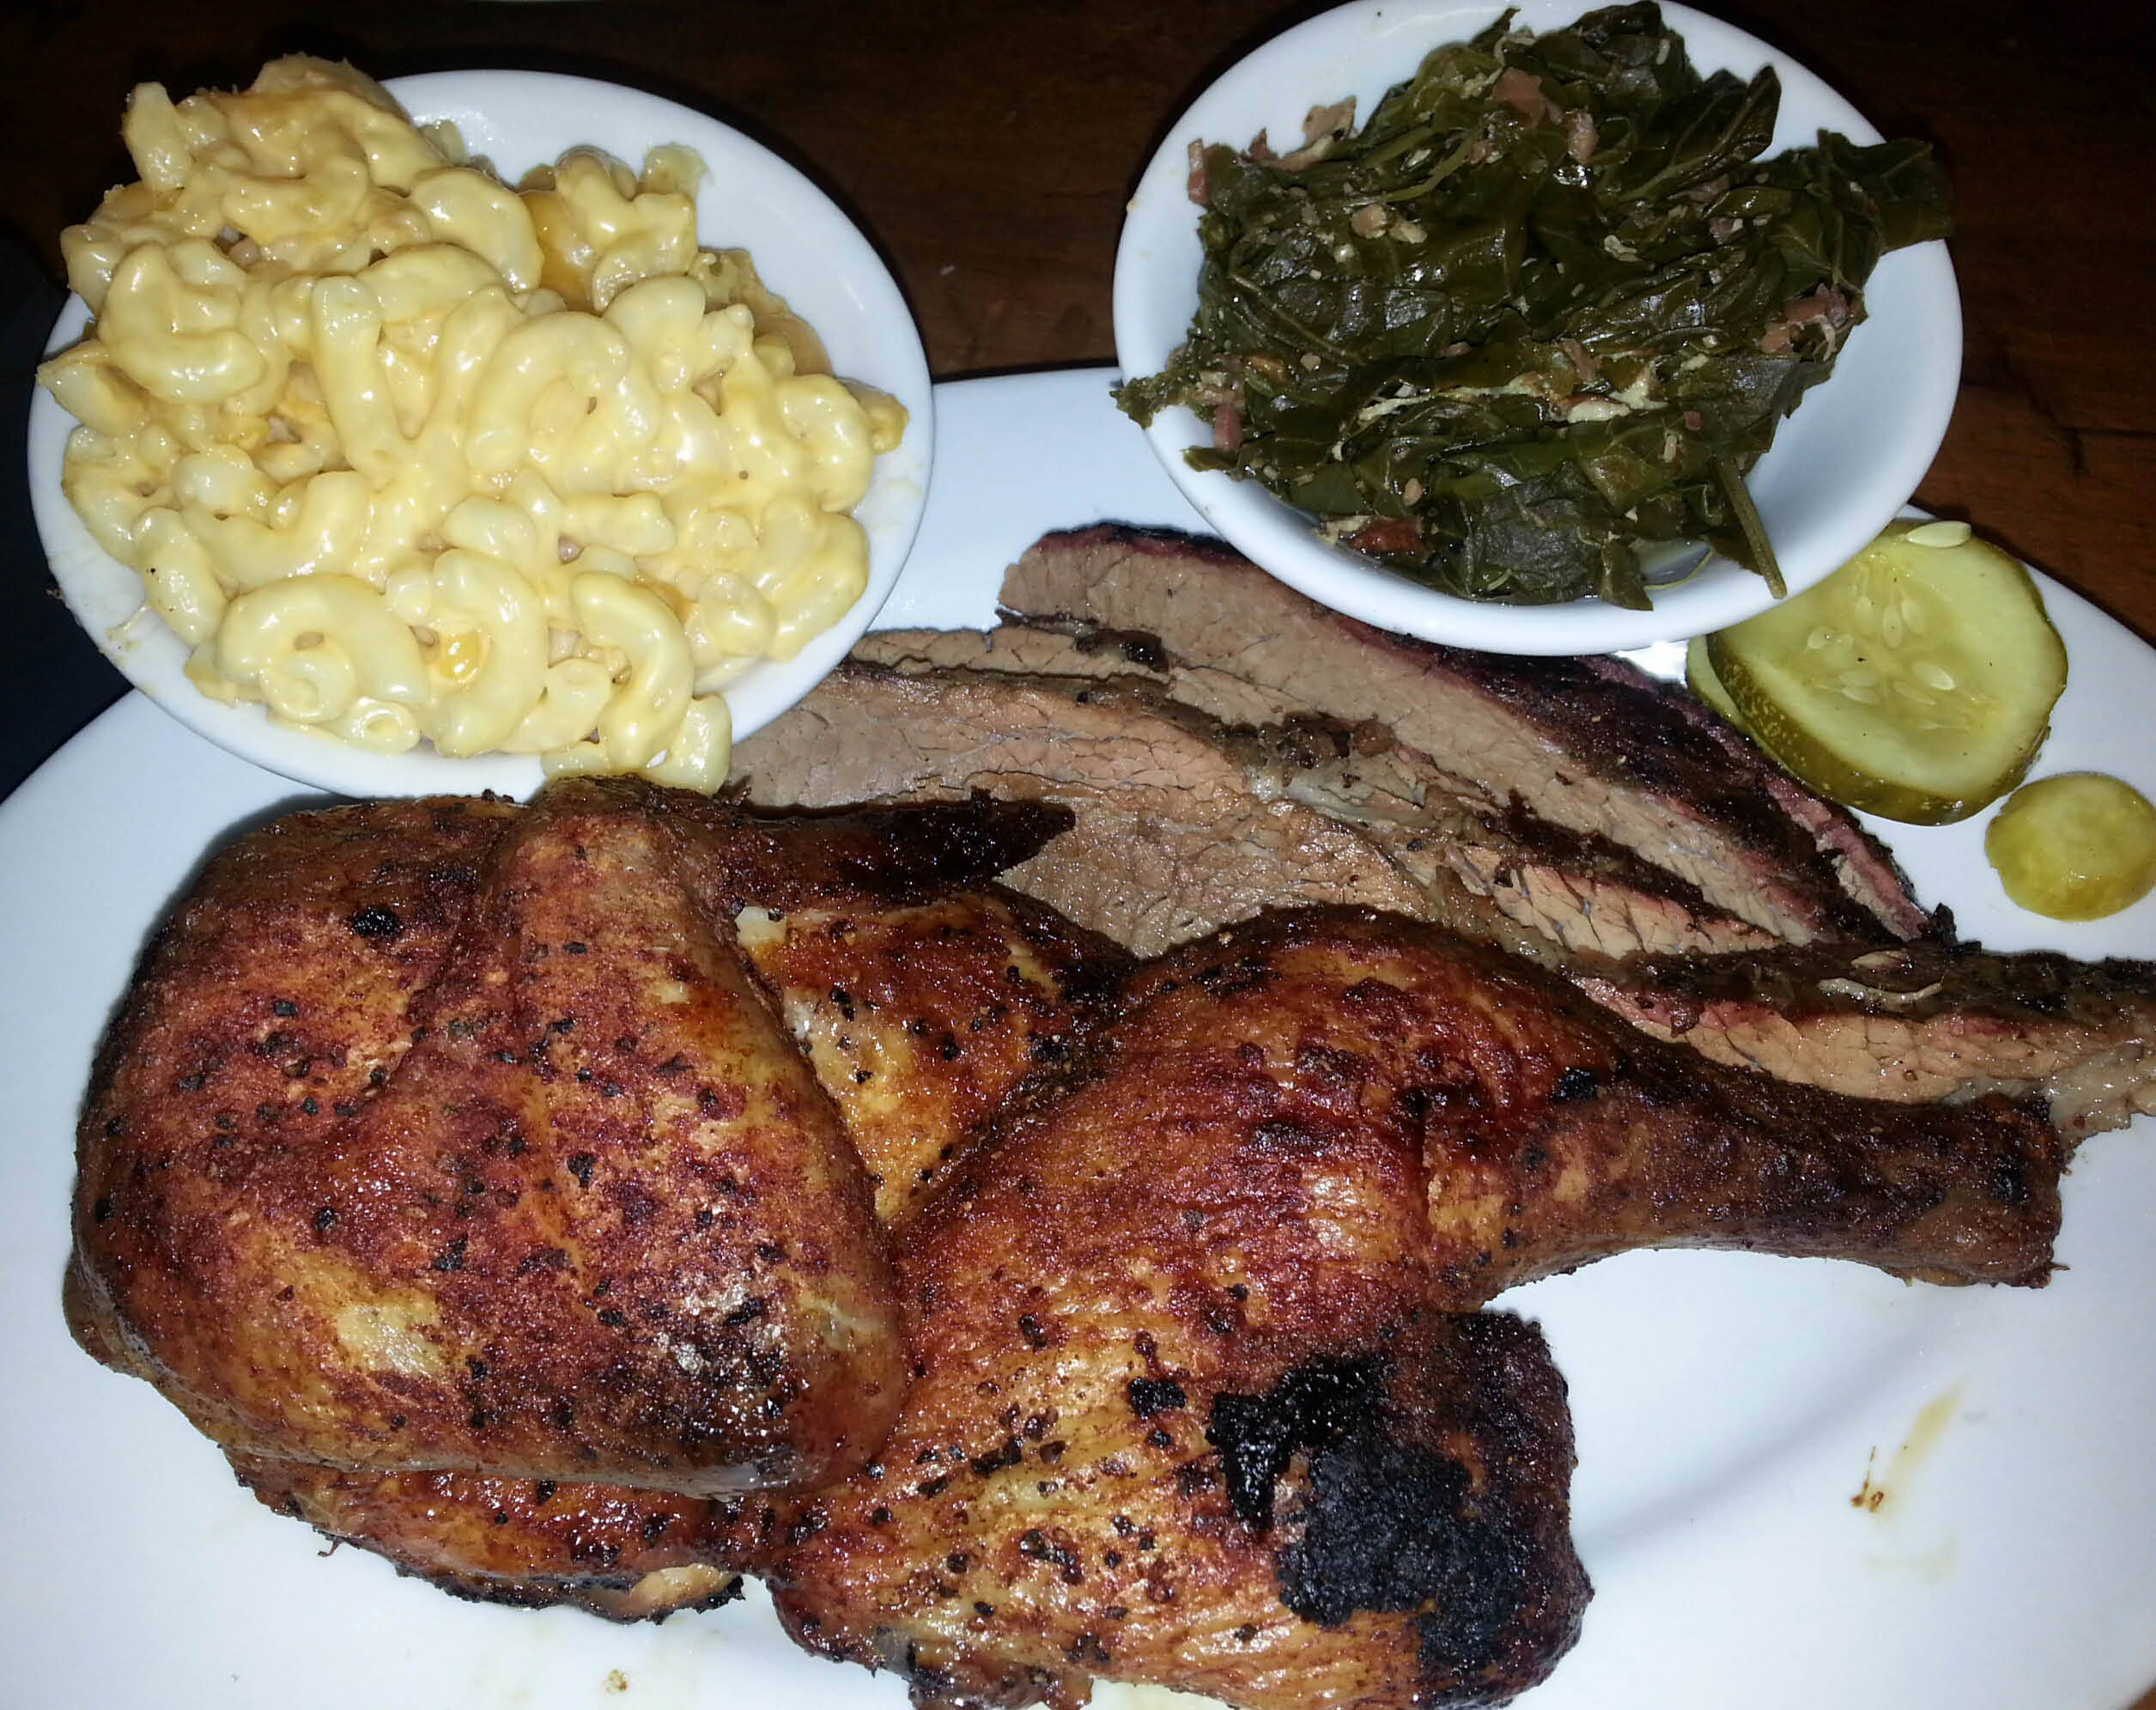 Smoked chicken and brisket meal